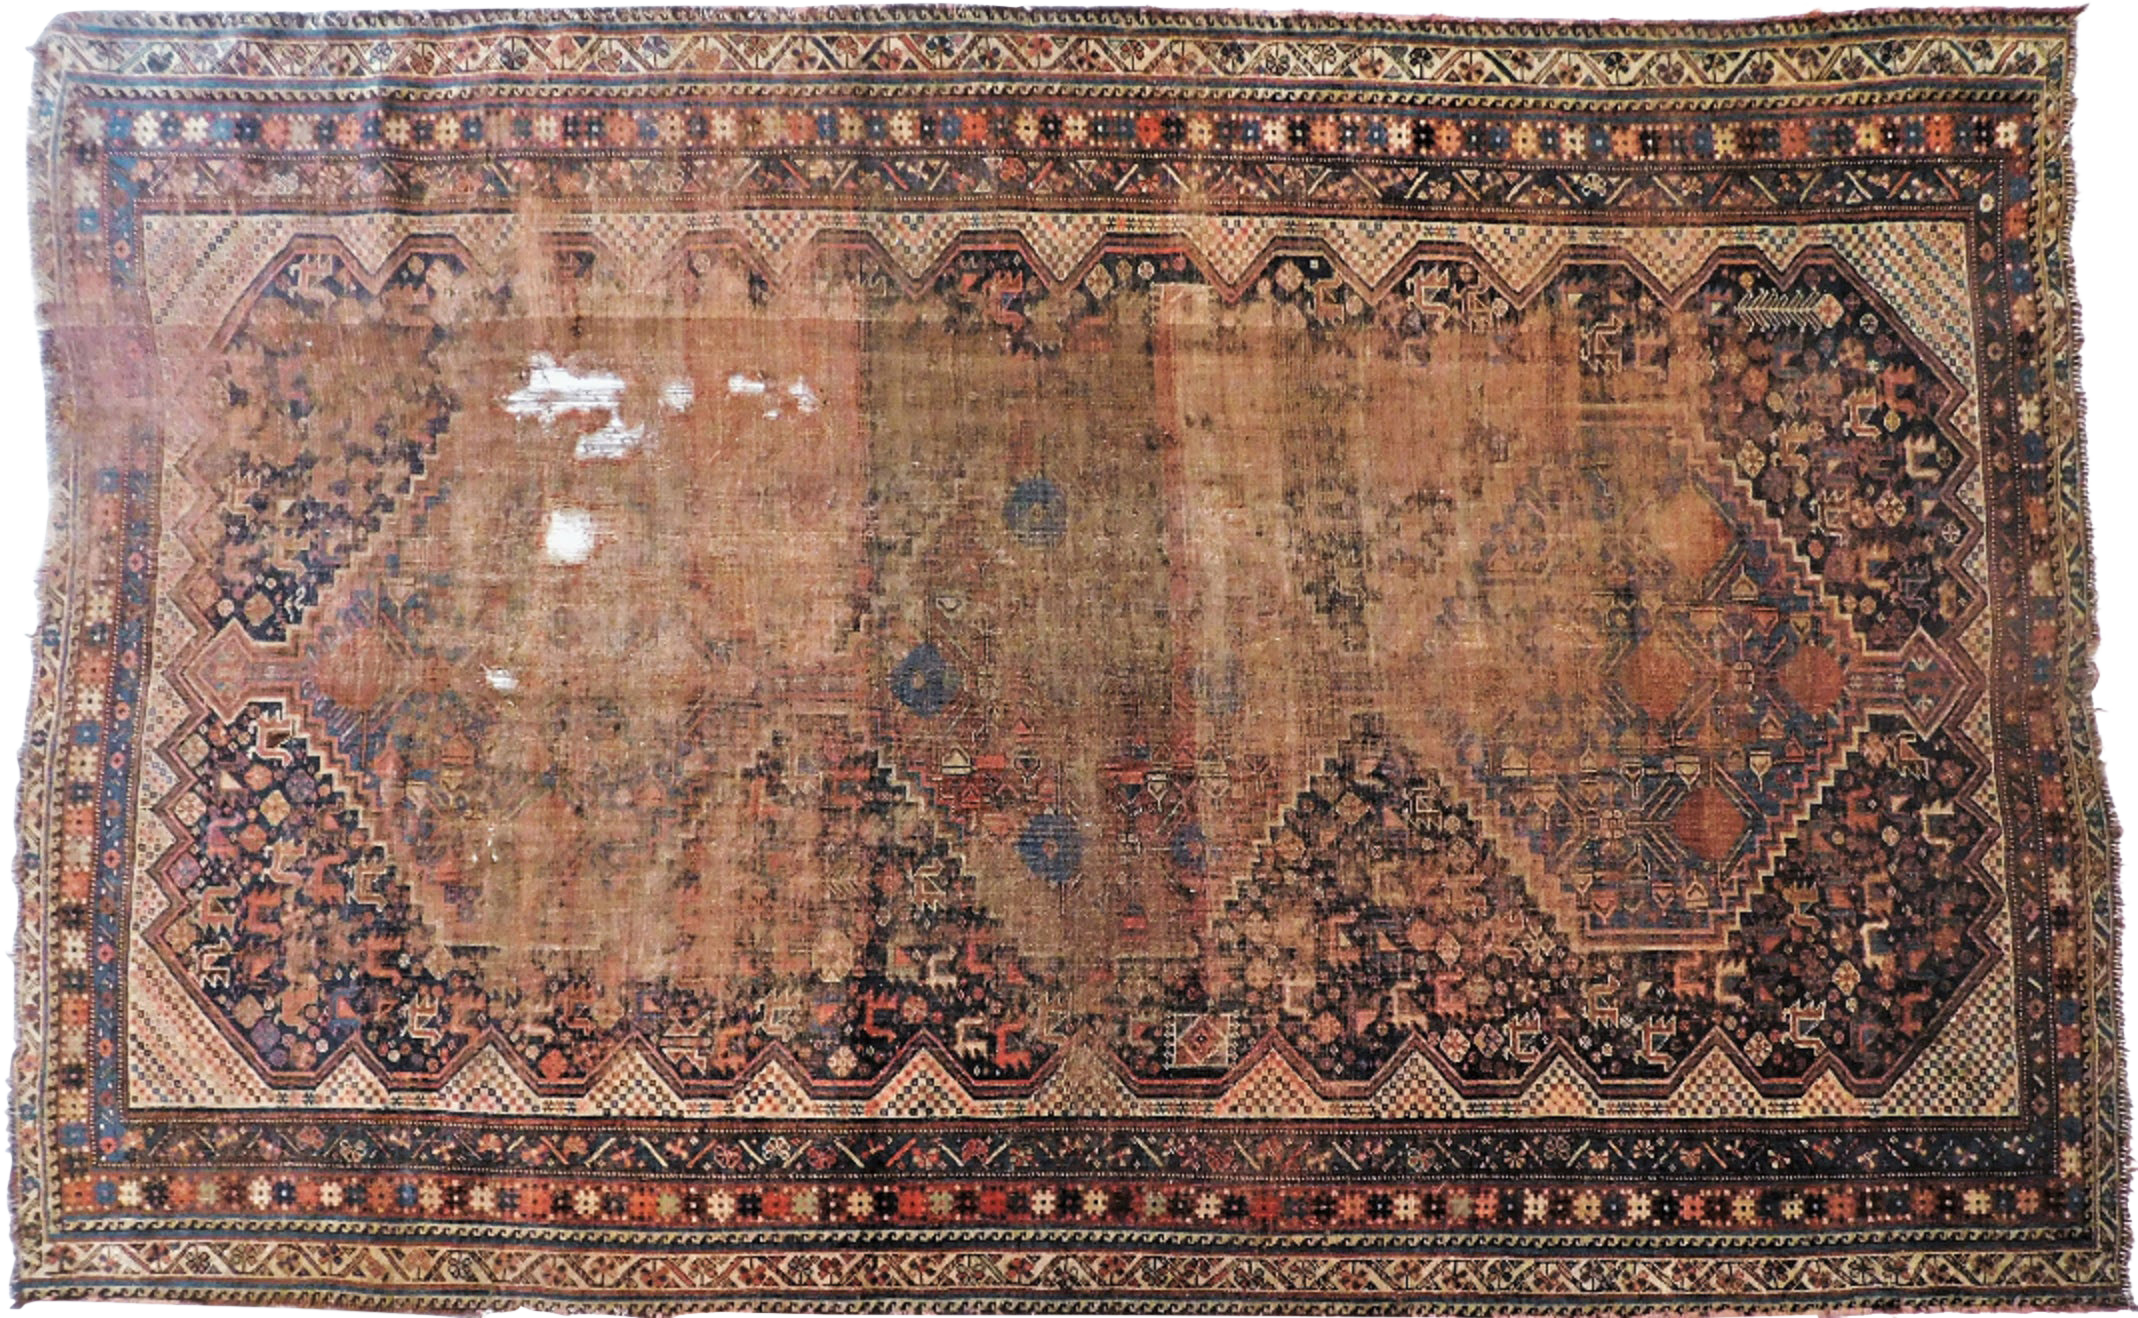 1900 Antique Tribal Persian Rug 5 8 Rugs On Carpet Persian Rug Rustic Area Rugs